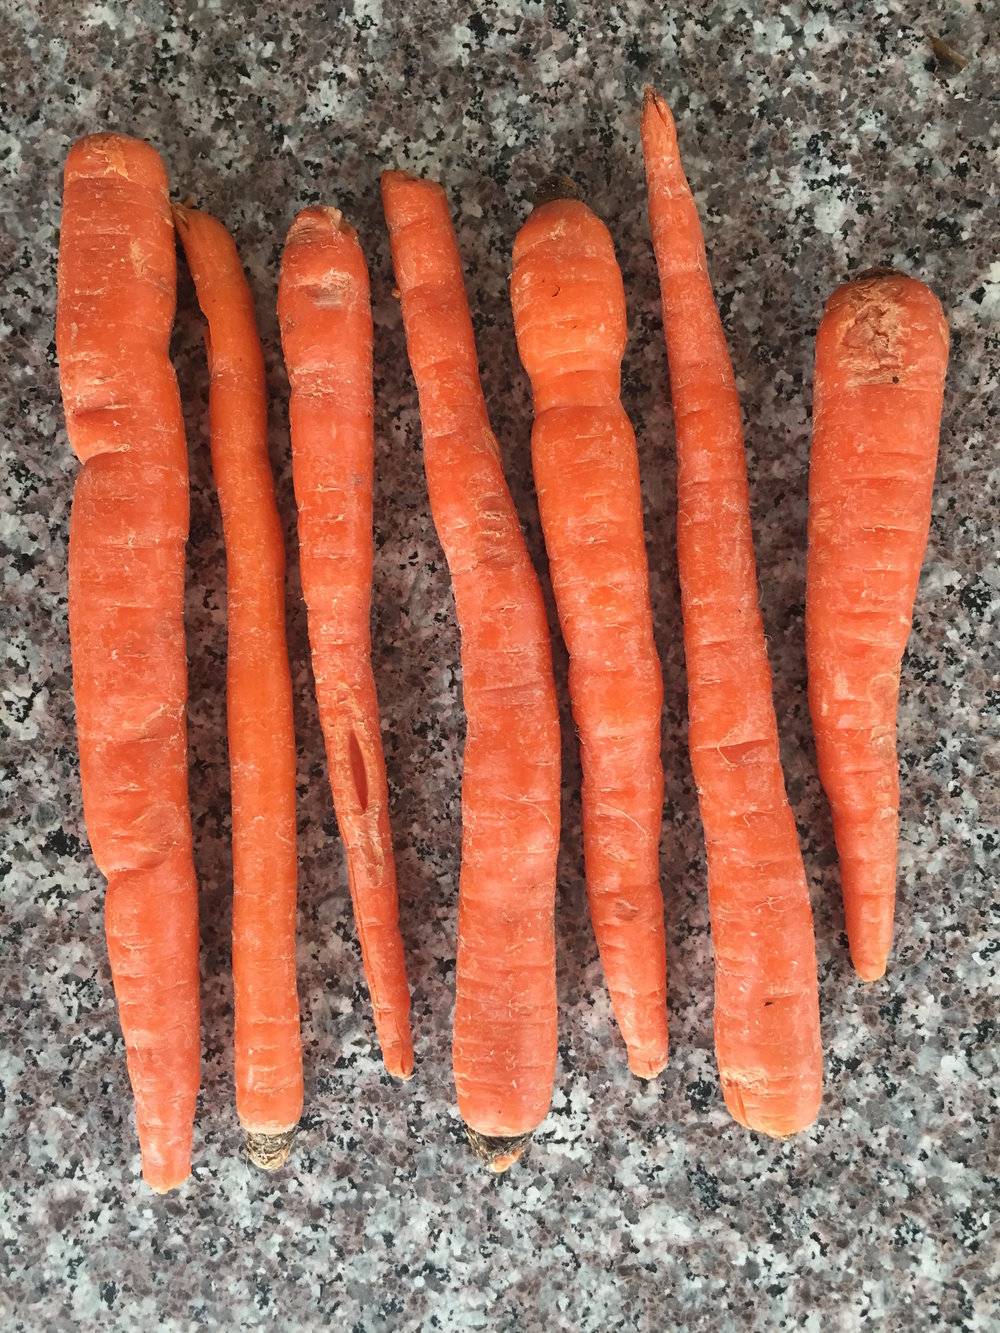 raw unpeeled carrots